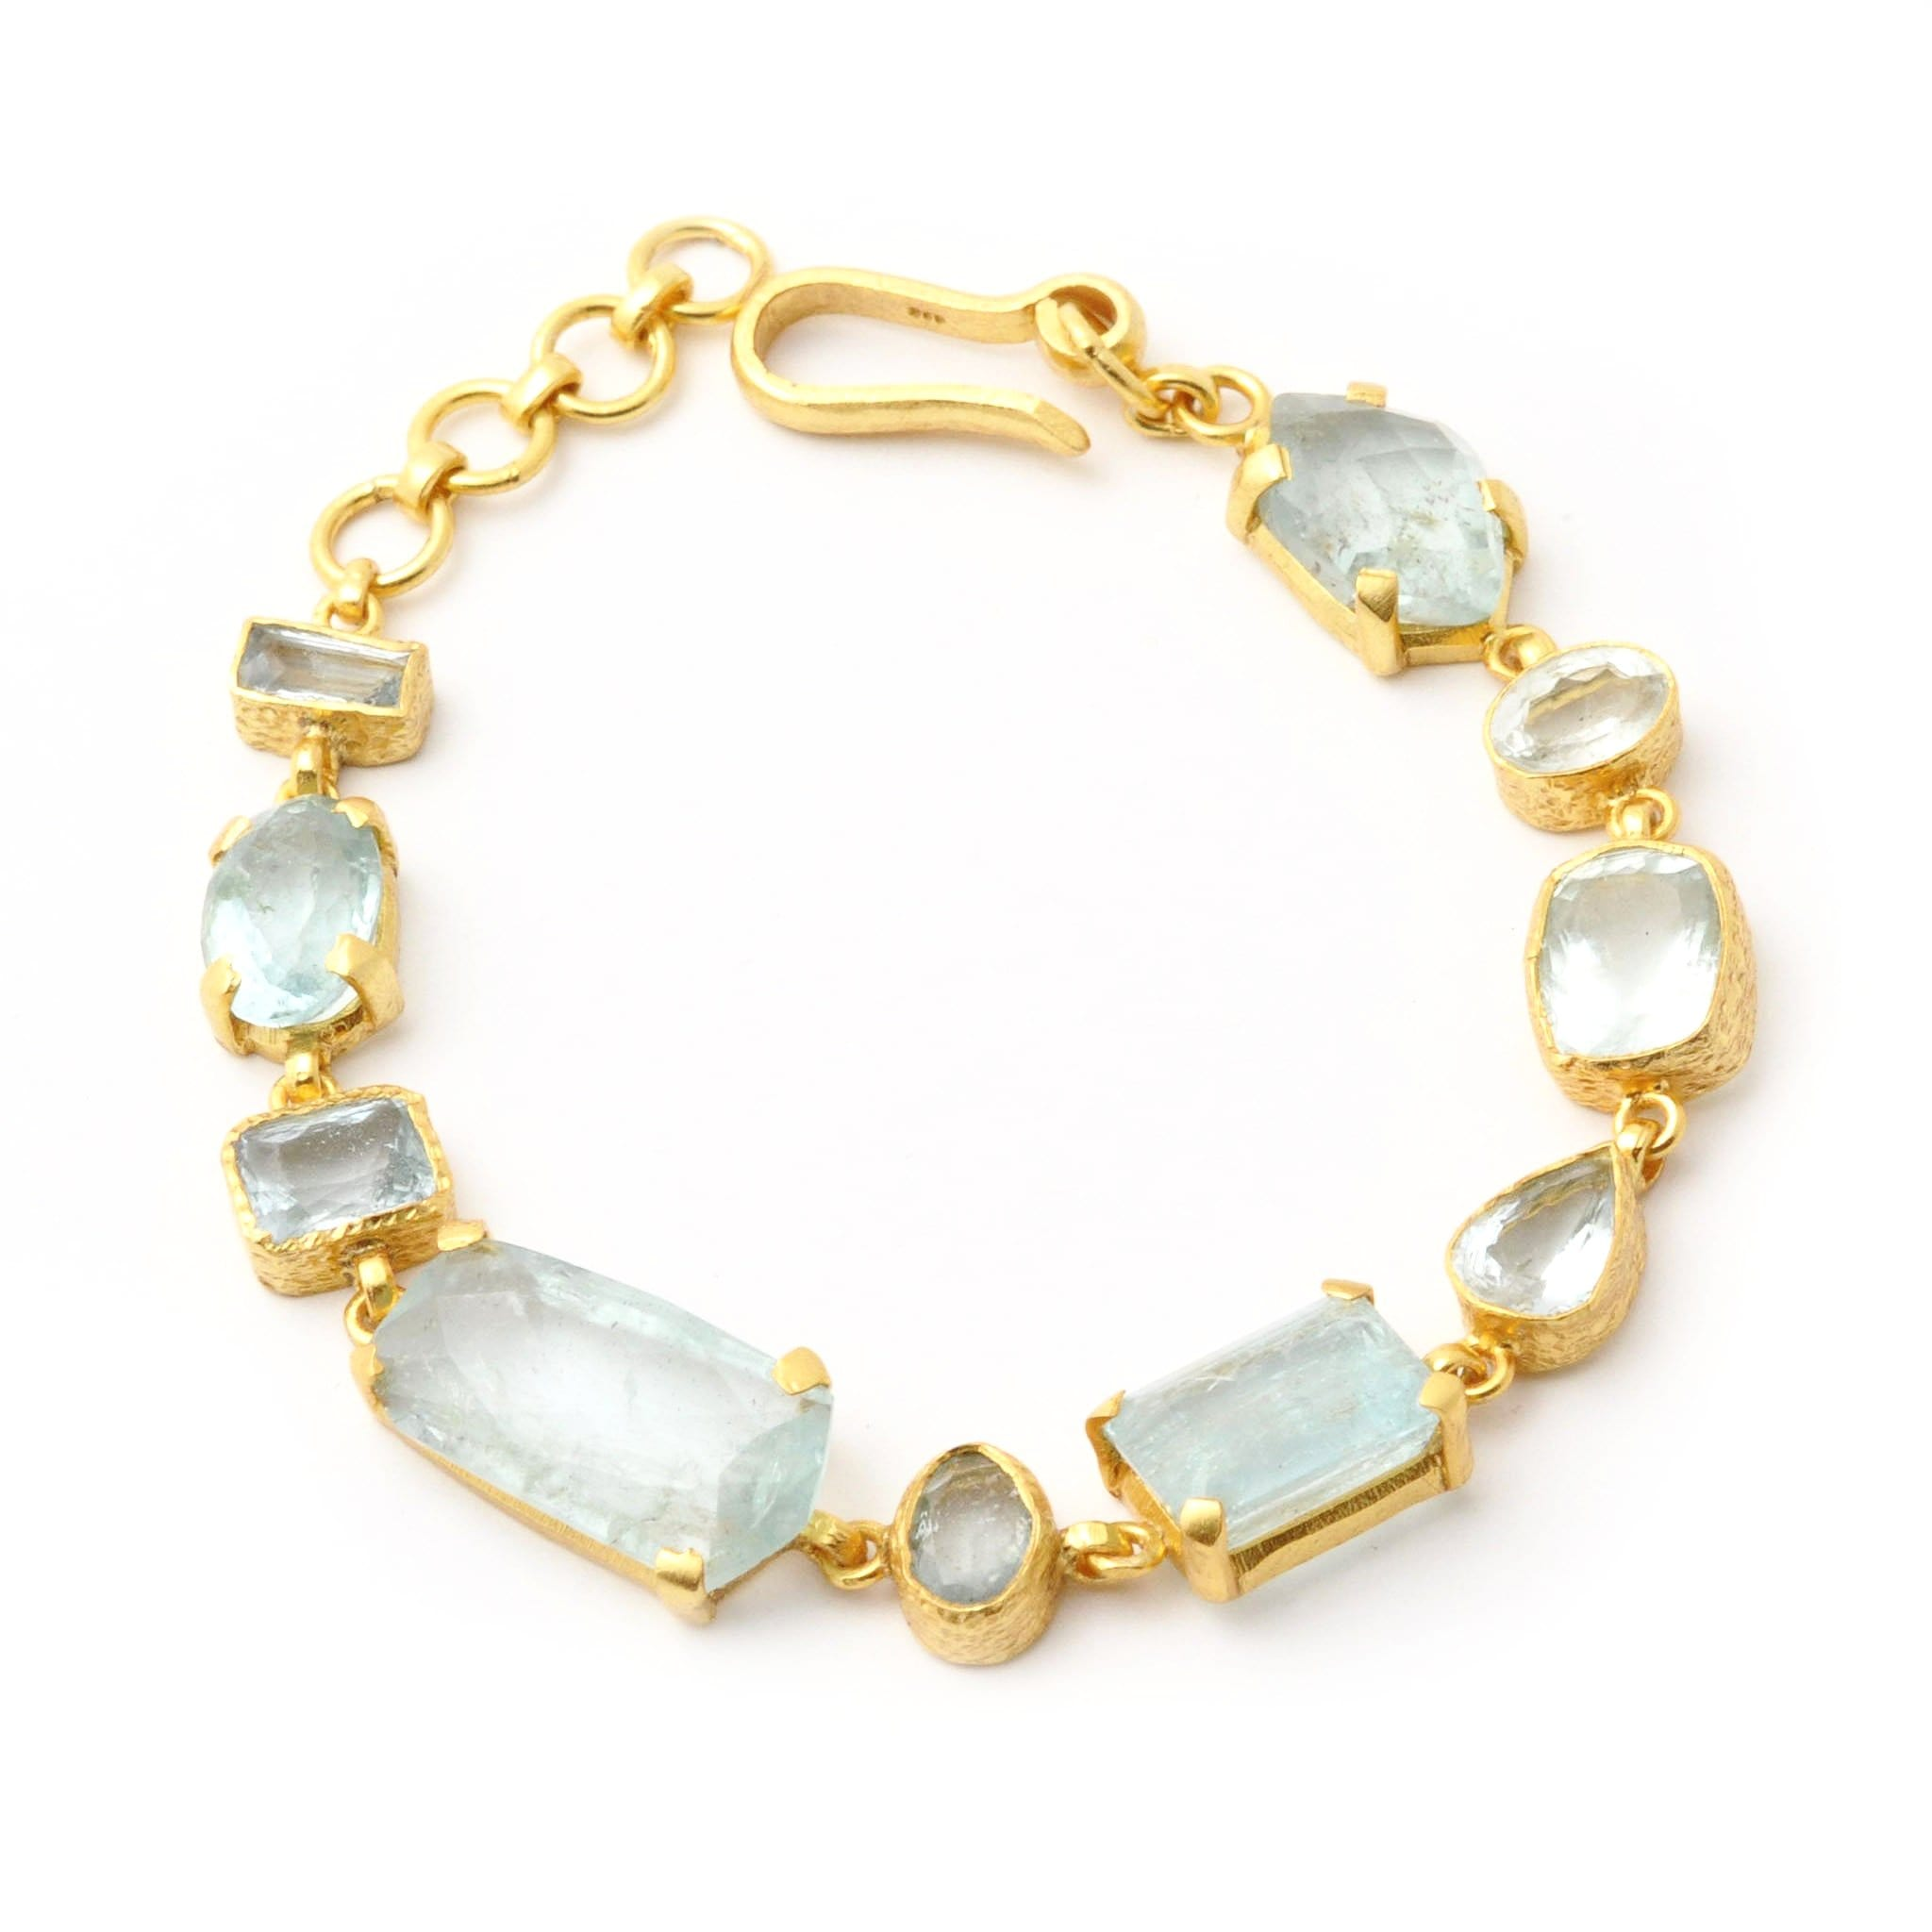 Aquamarine Multi Stone Chain Bracelet - Curated Los Angeles